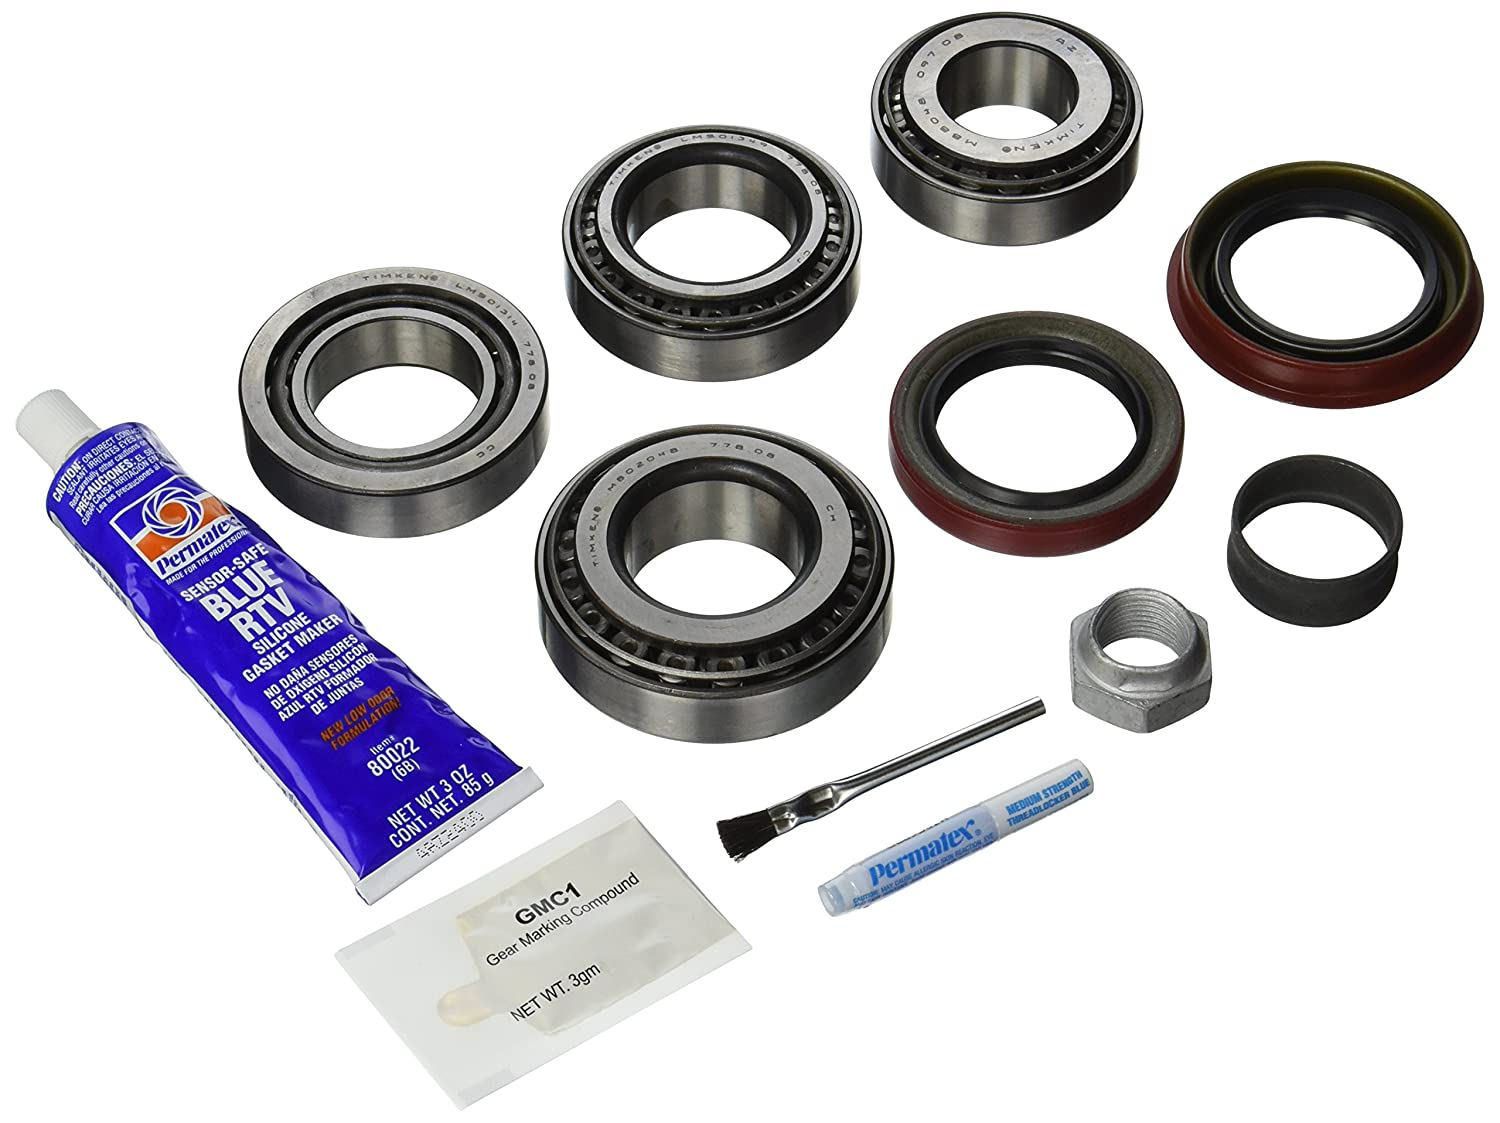 Timken DRK321 Light Duty Differential Rebuild Kit